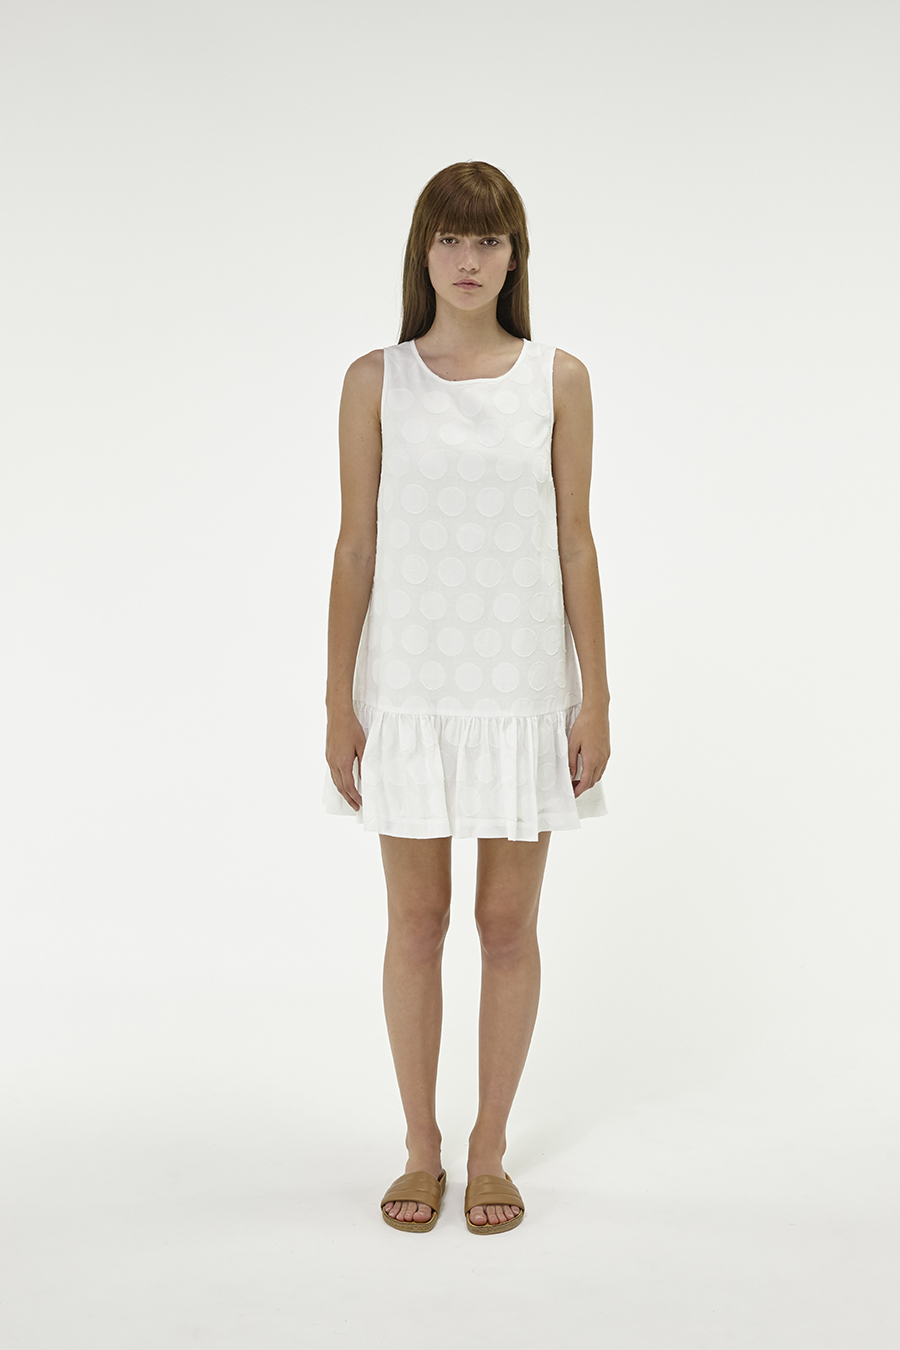 Huffer_Q3-16_W-Spot-Port-Dress_White-01